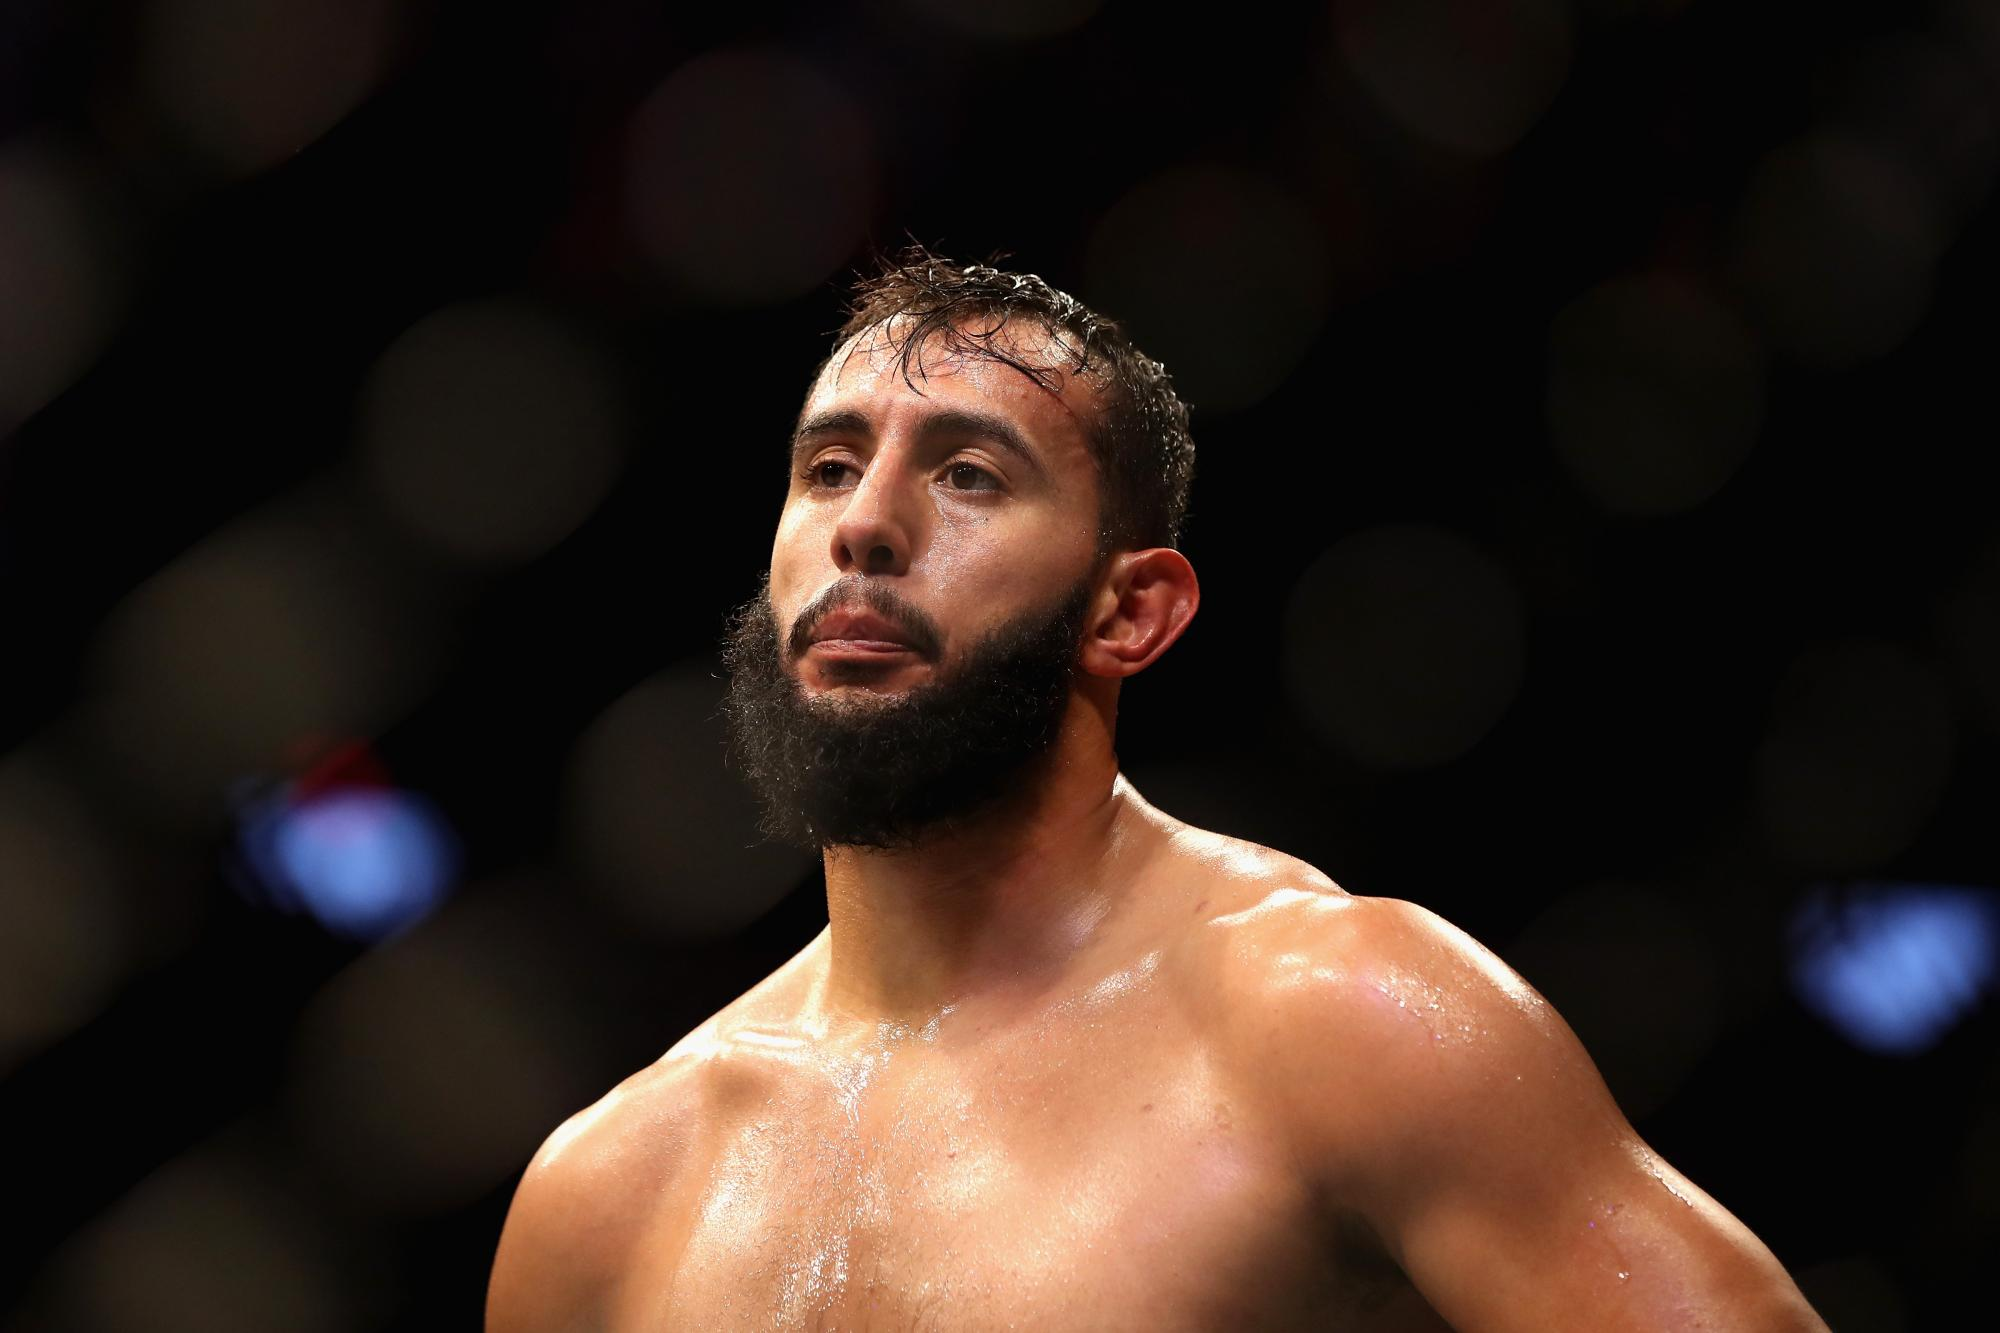 UFC News: Dana White scored UFC 247 main event for Dominick Reyes - Jones